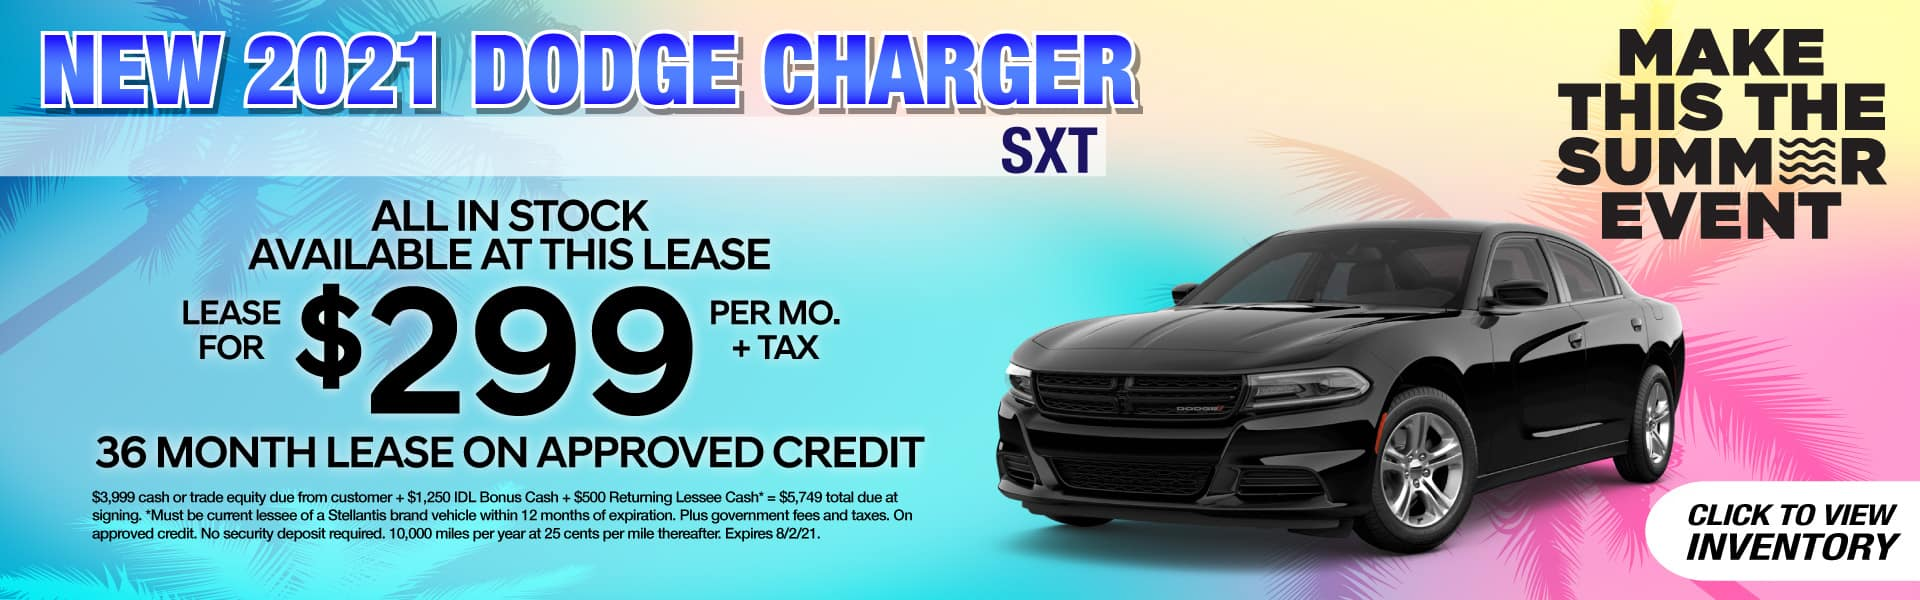 KMSD CDJR 1920px_Lease_Aug2_Charger SXT